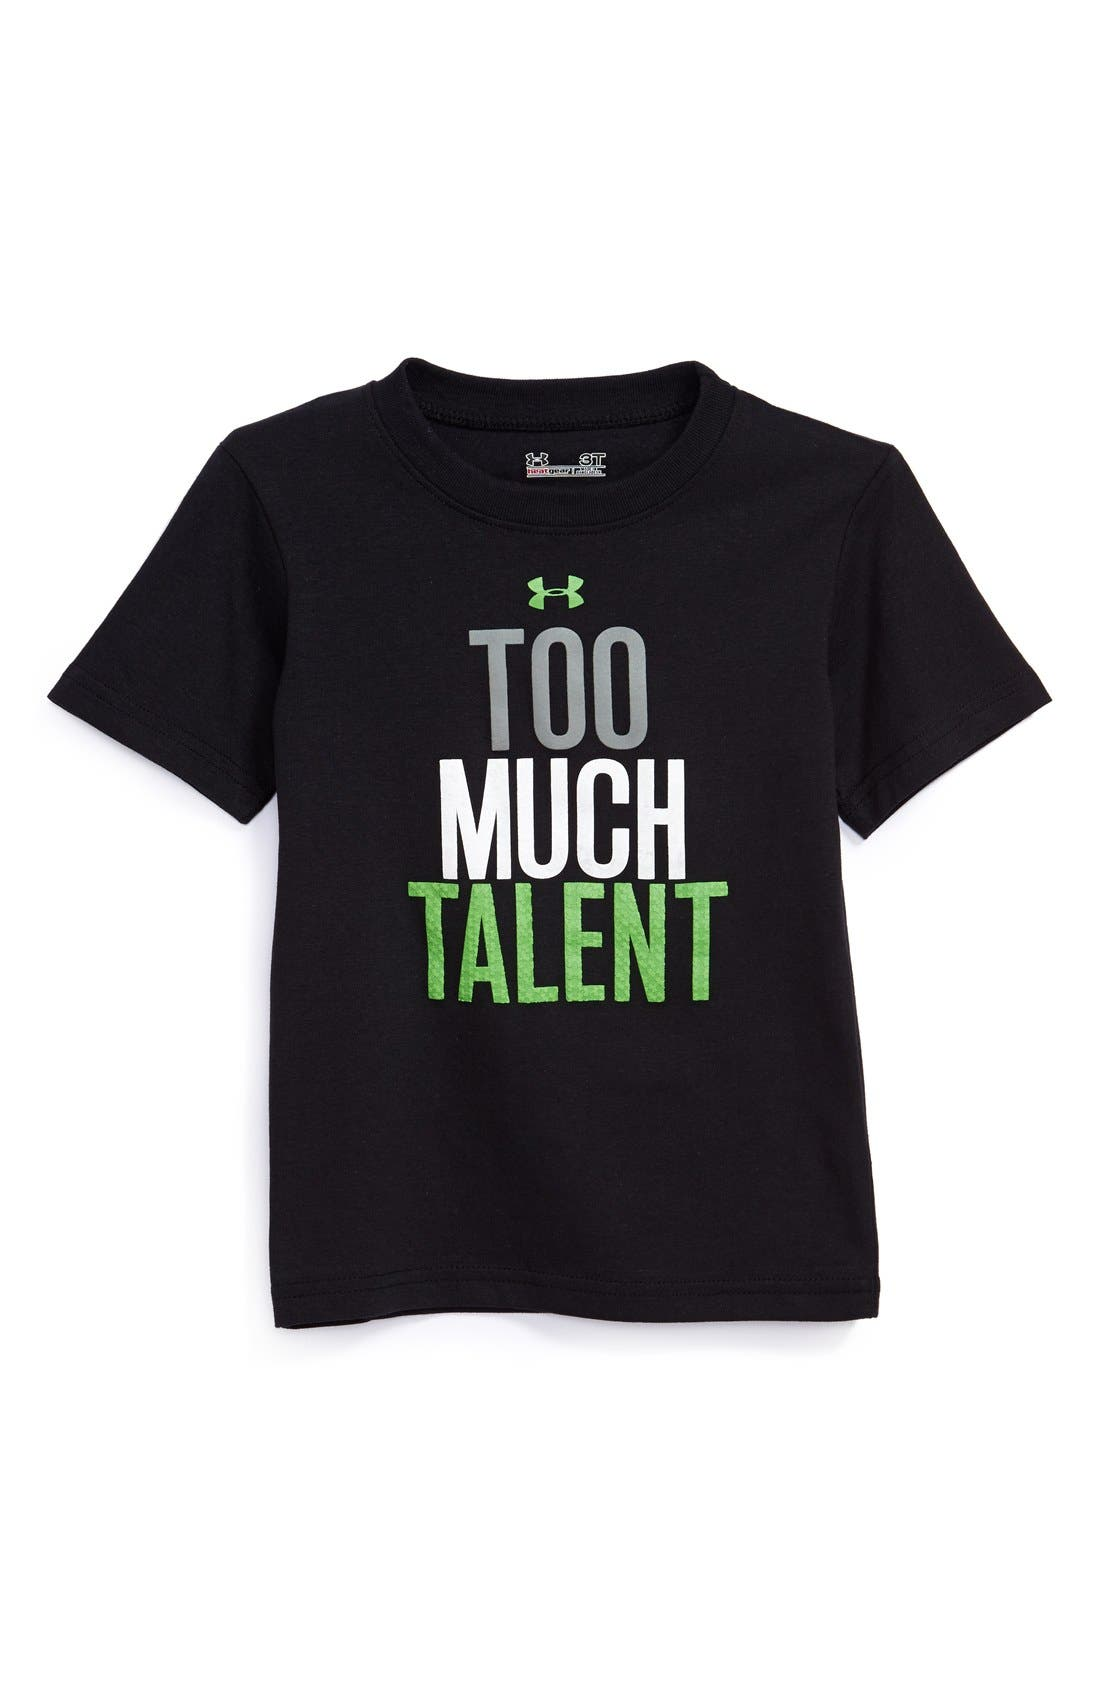 Alternate Image 1 Selected - Under Armour 'Too Much Talent' HeatGear® T-Shirt (Toddler Boys)